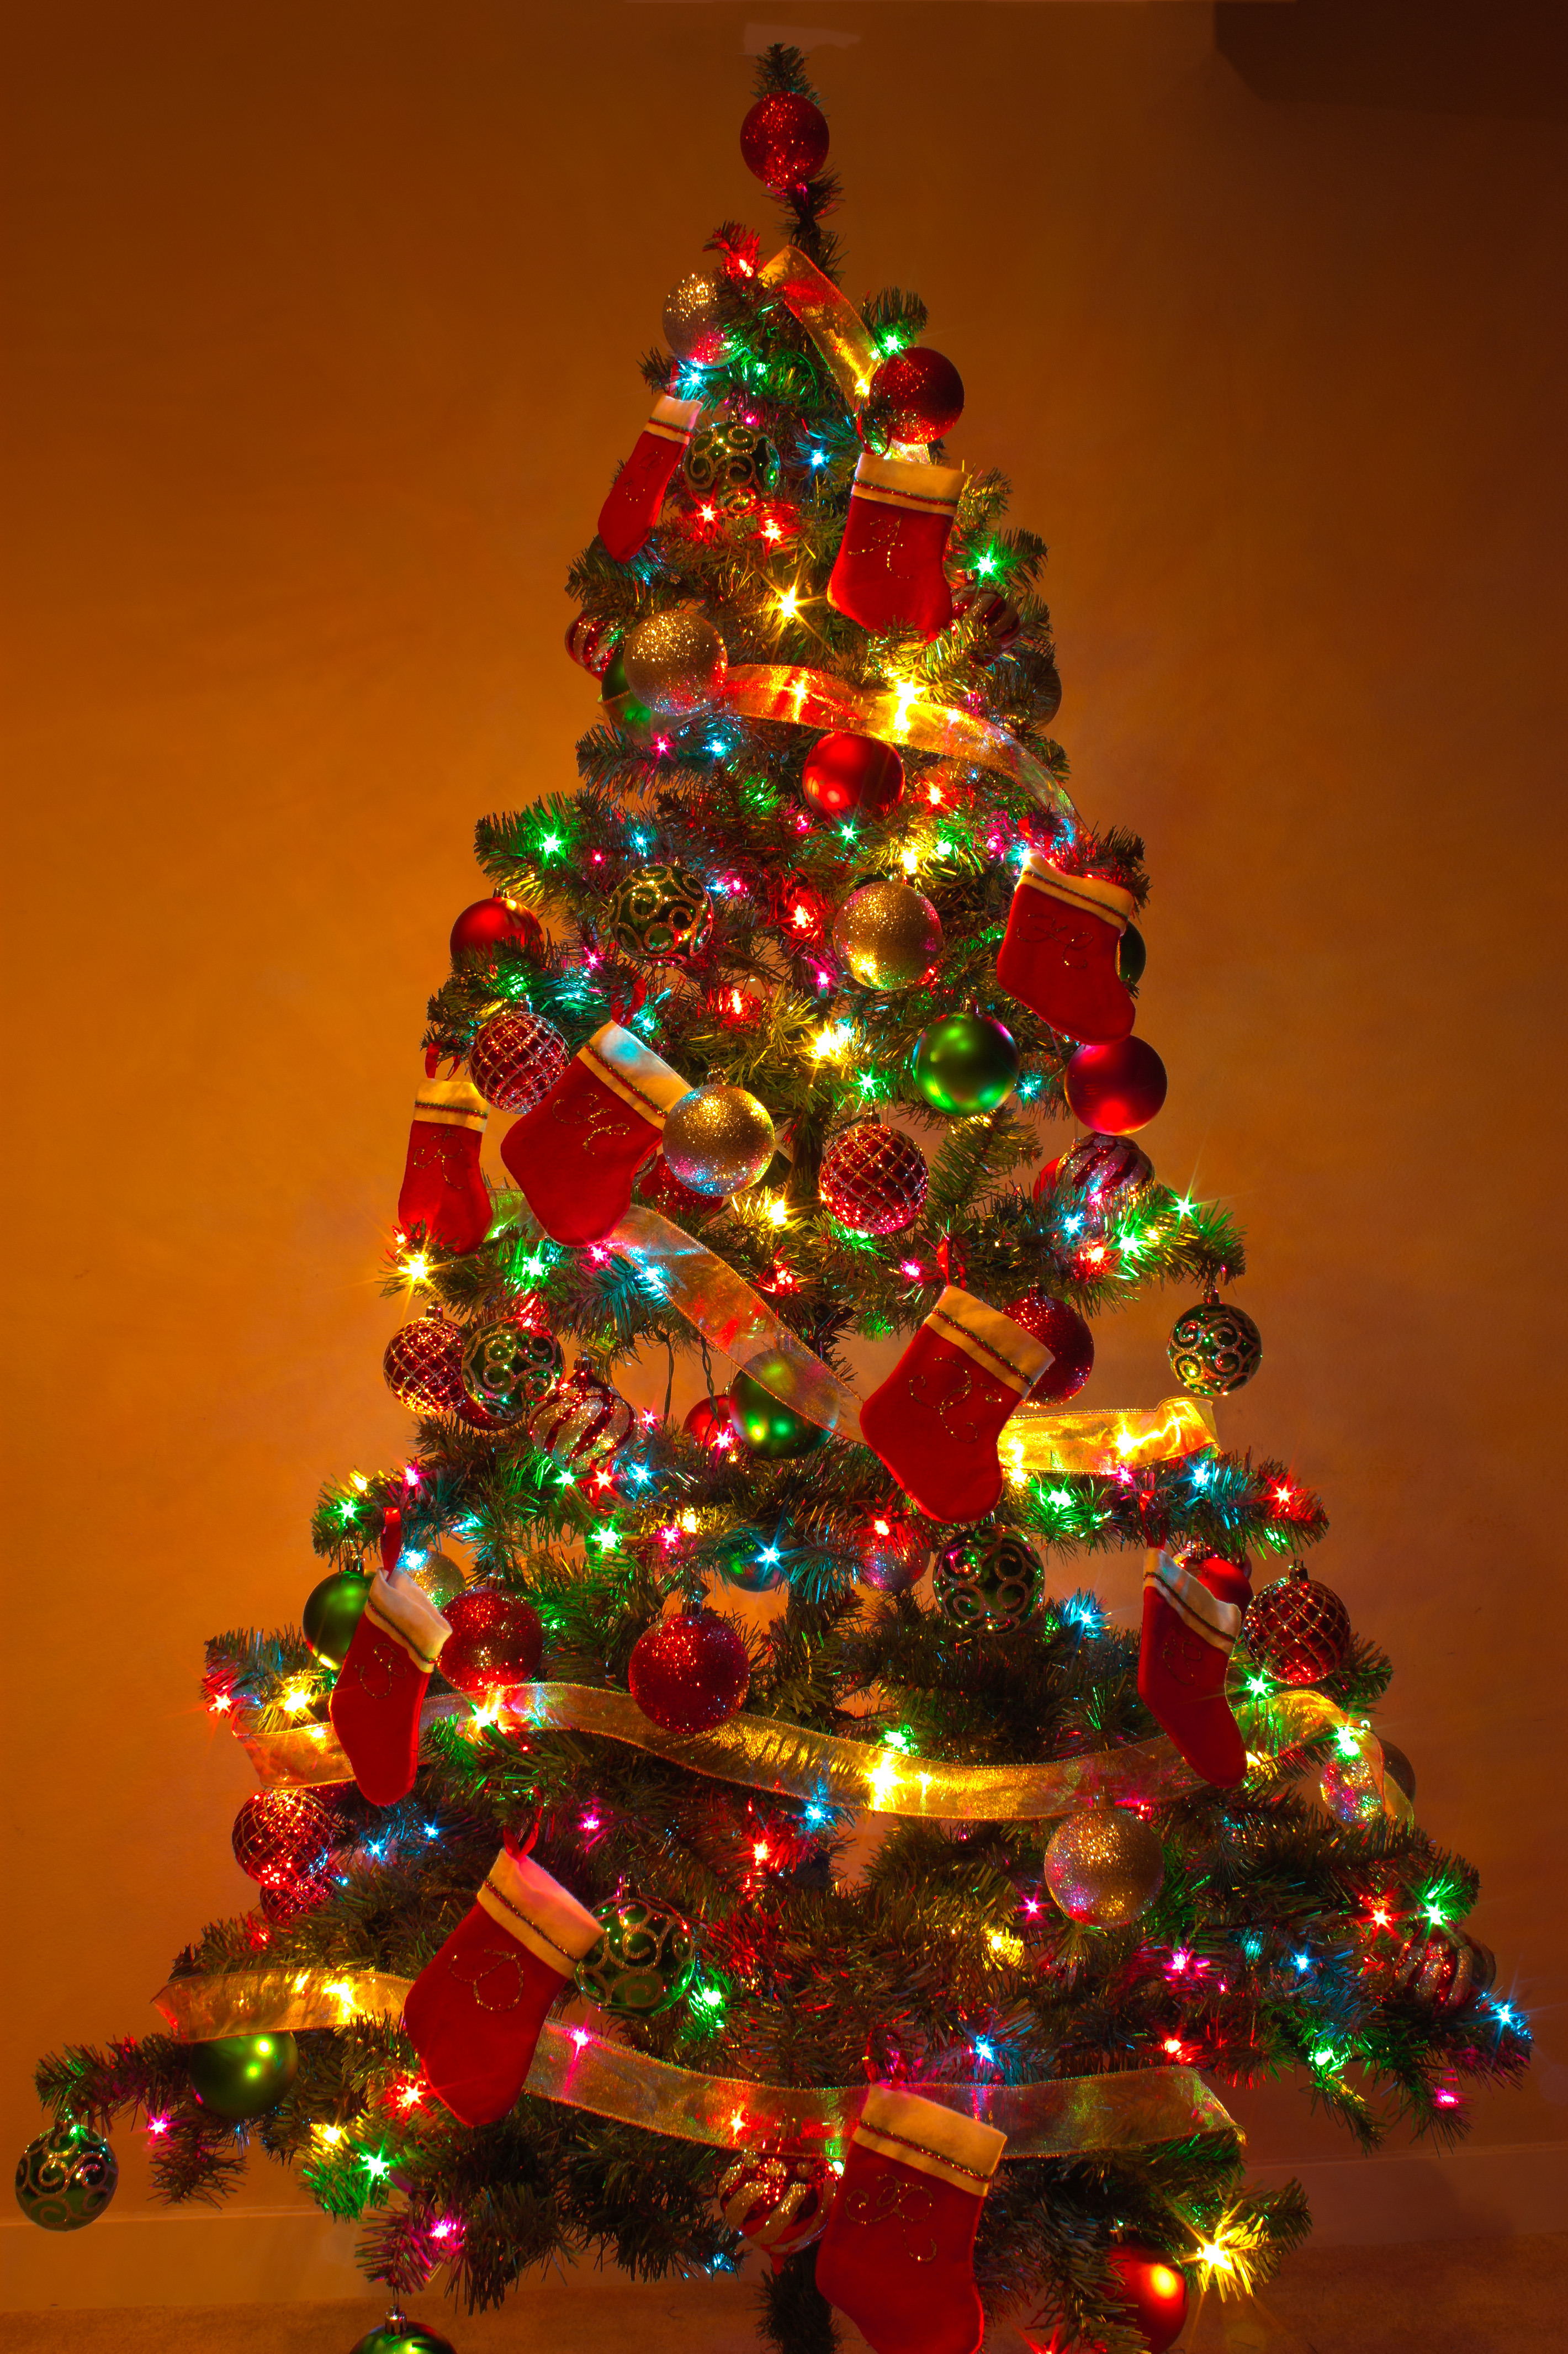 File:Y Christmas Tree 2.jpg - Wikimedia Commons